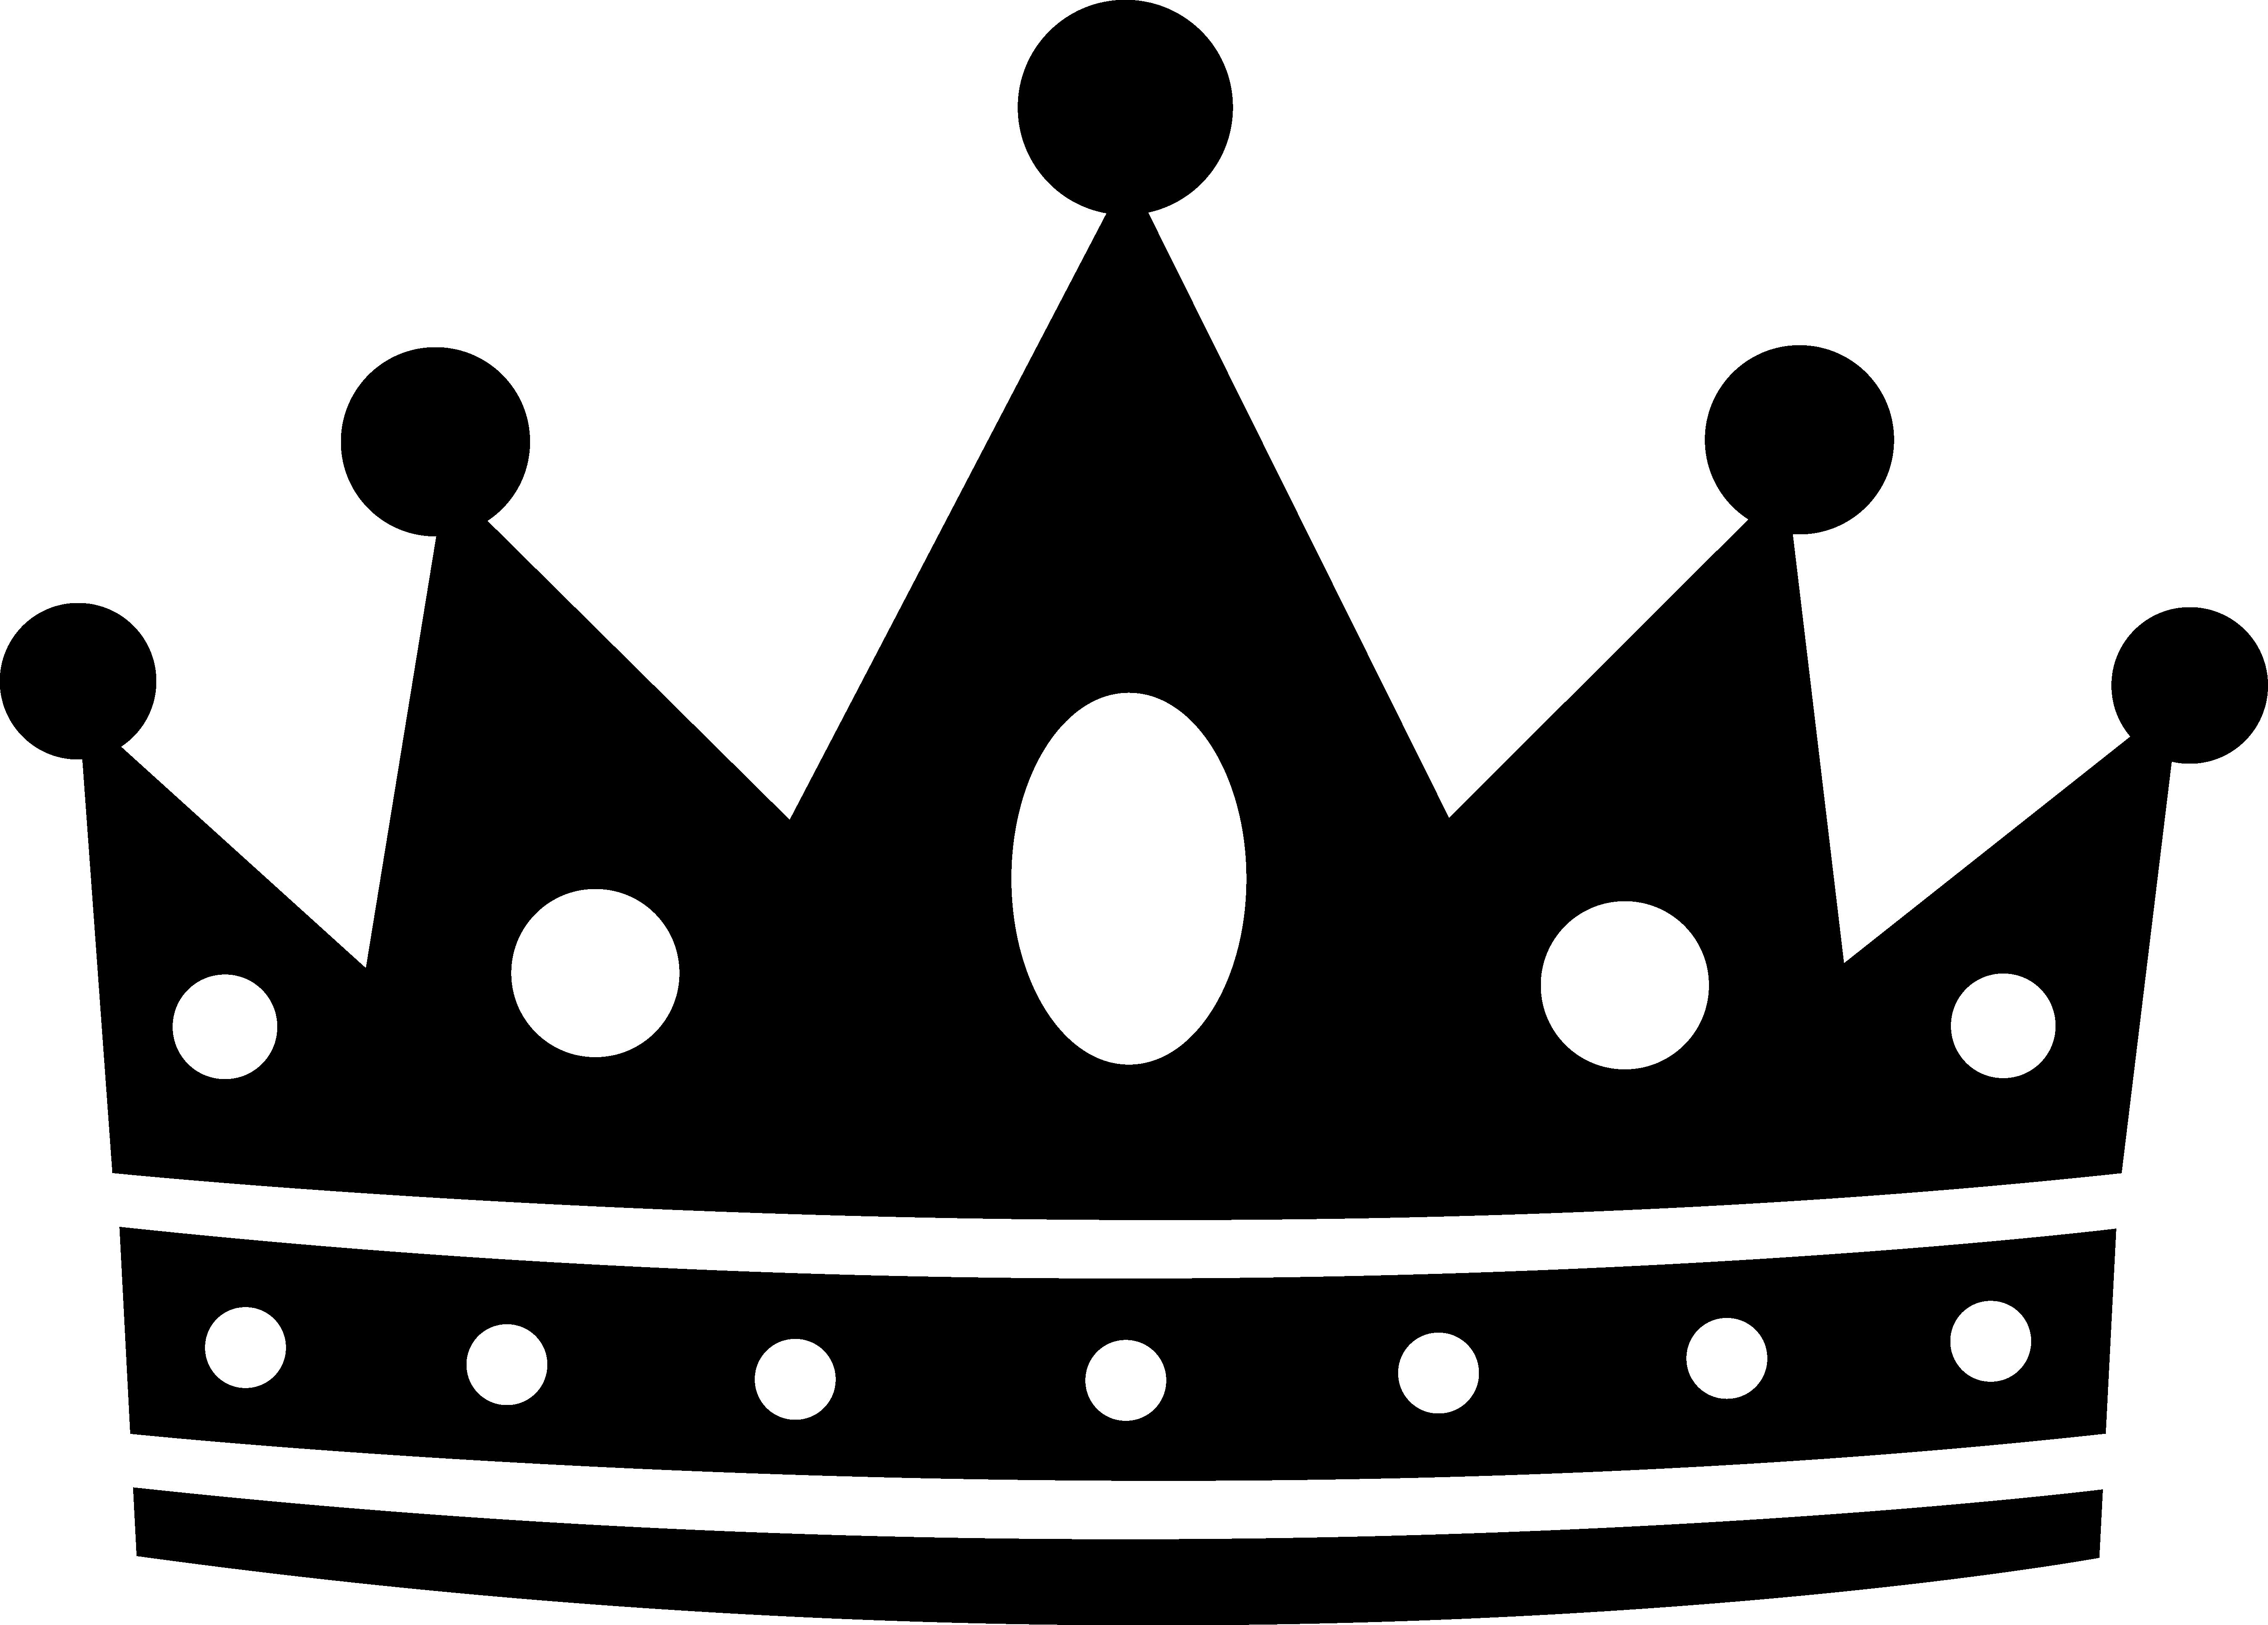 Crown clipart. Awesome black and white